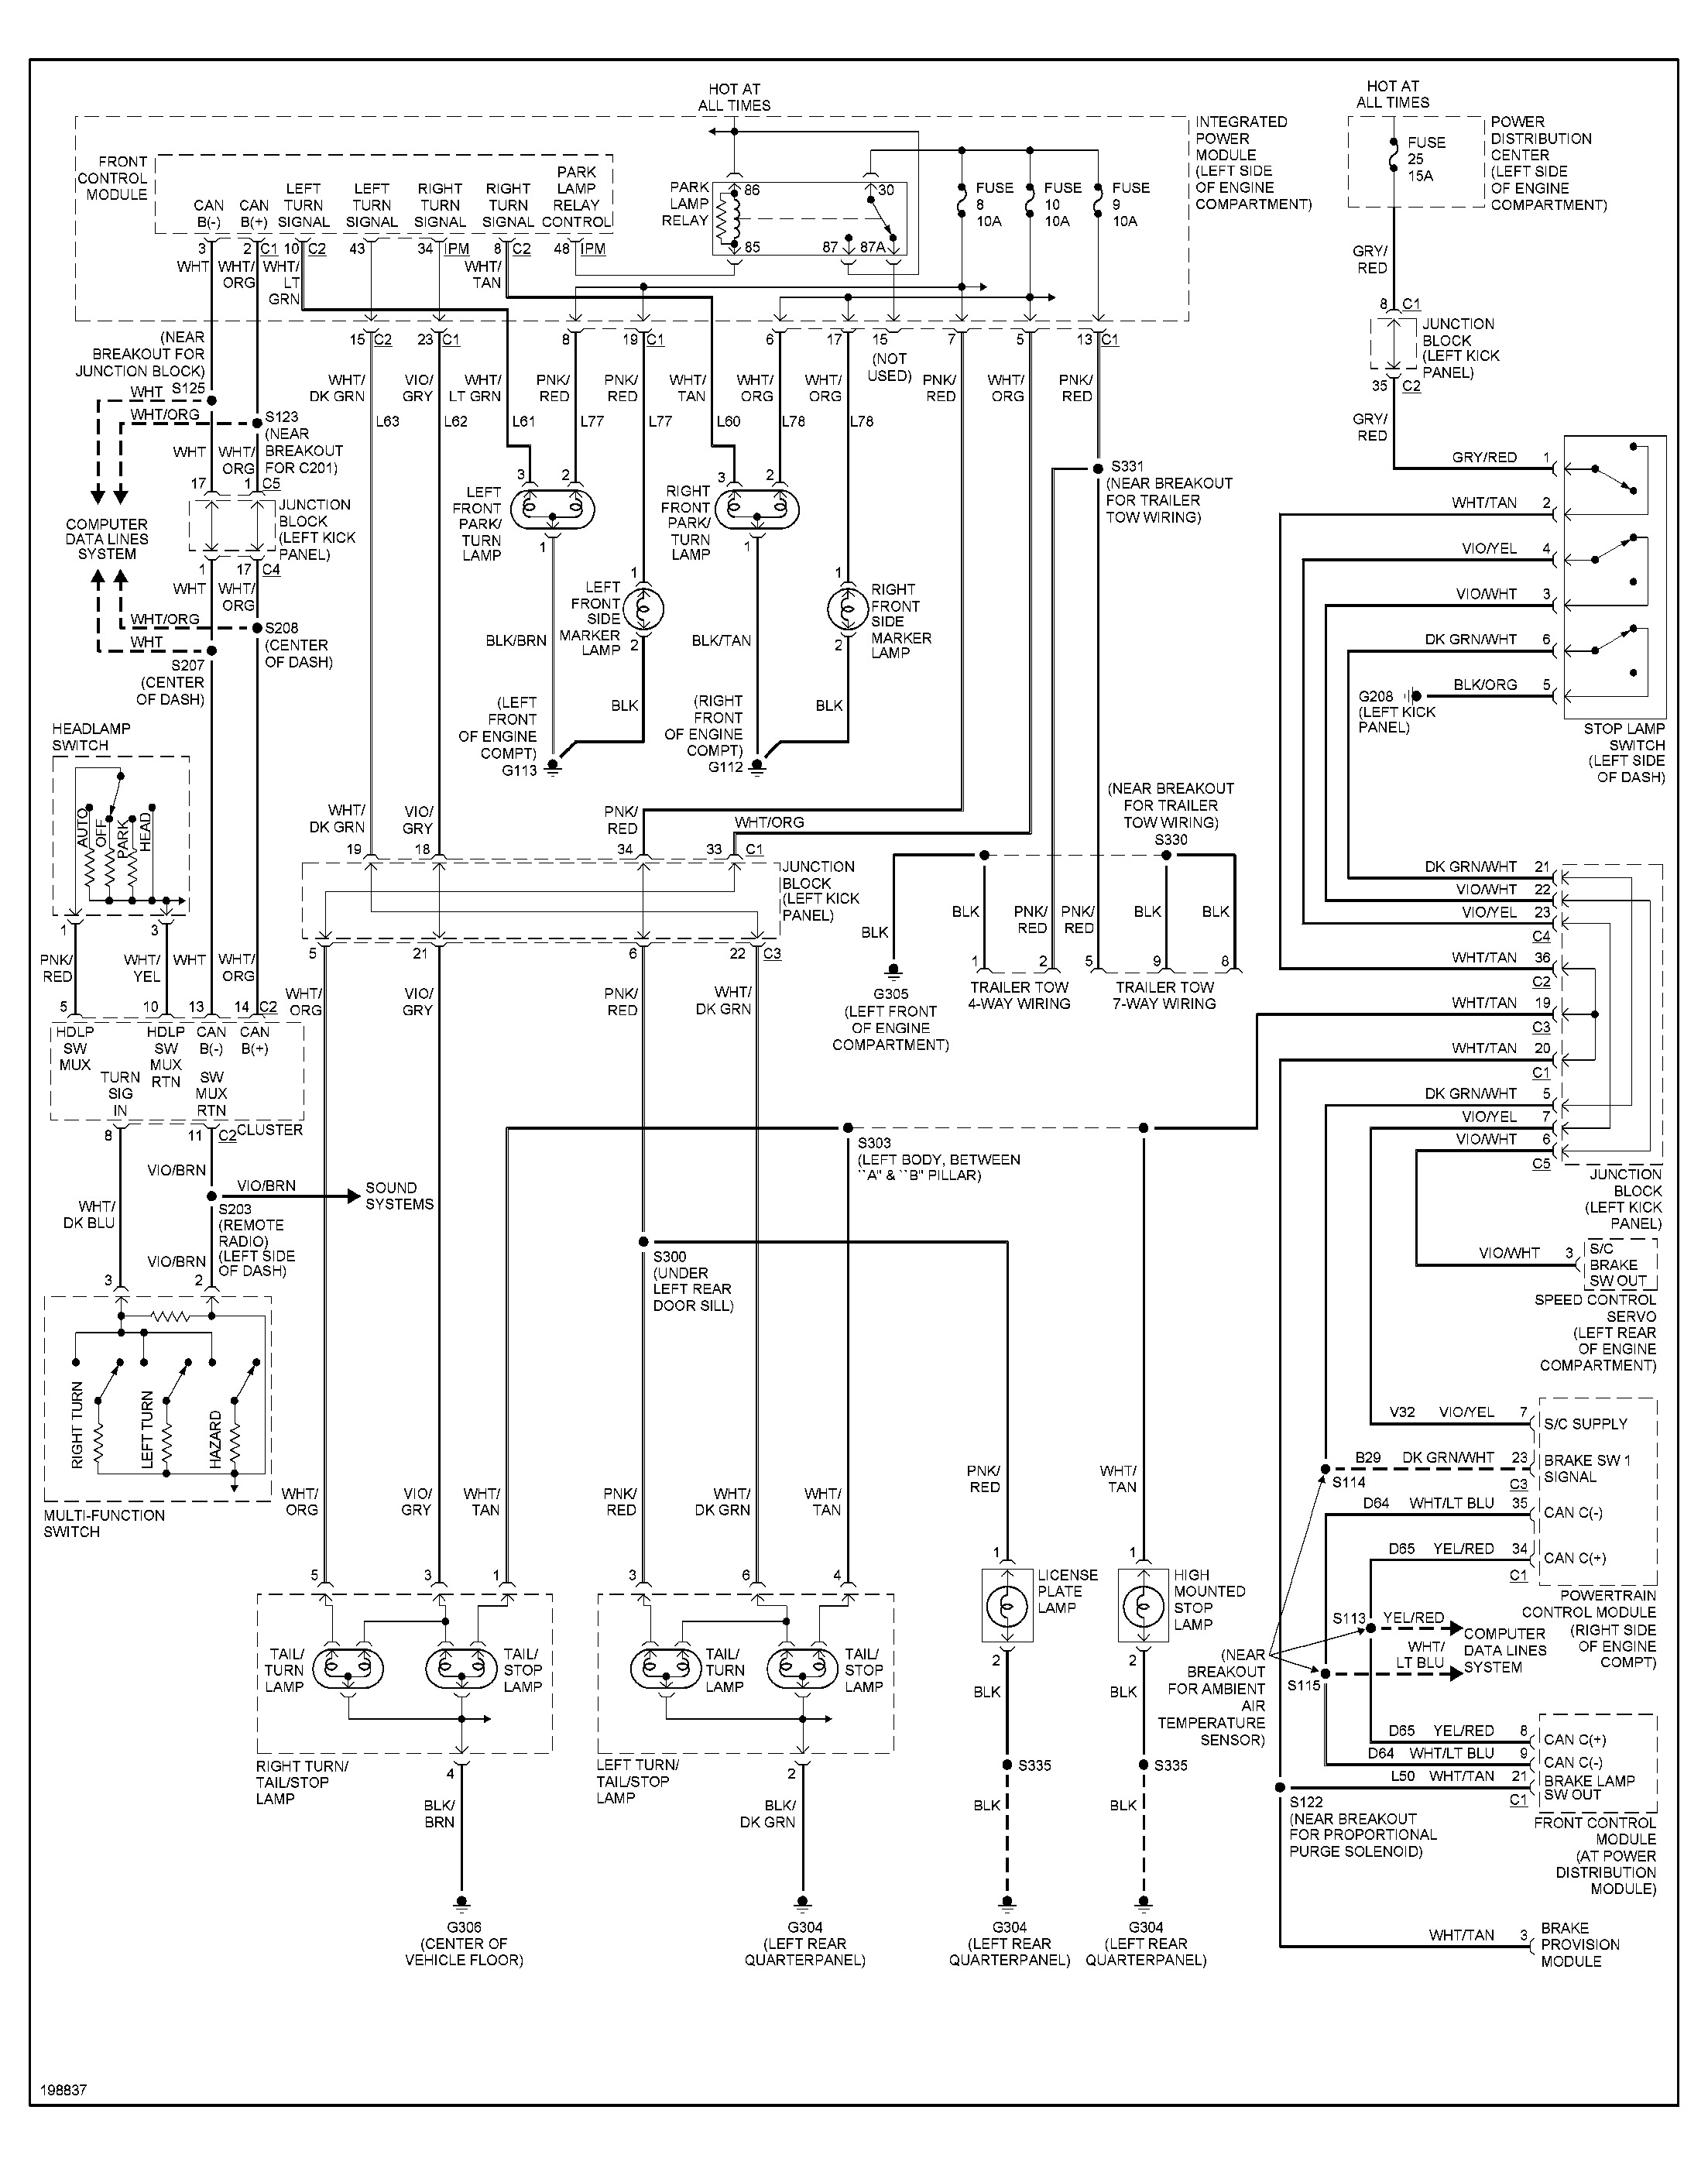 2005 Dodge Durango Infinity Sound System Wiring Diagram from www.2carpros.com